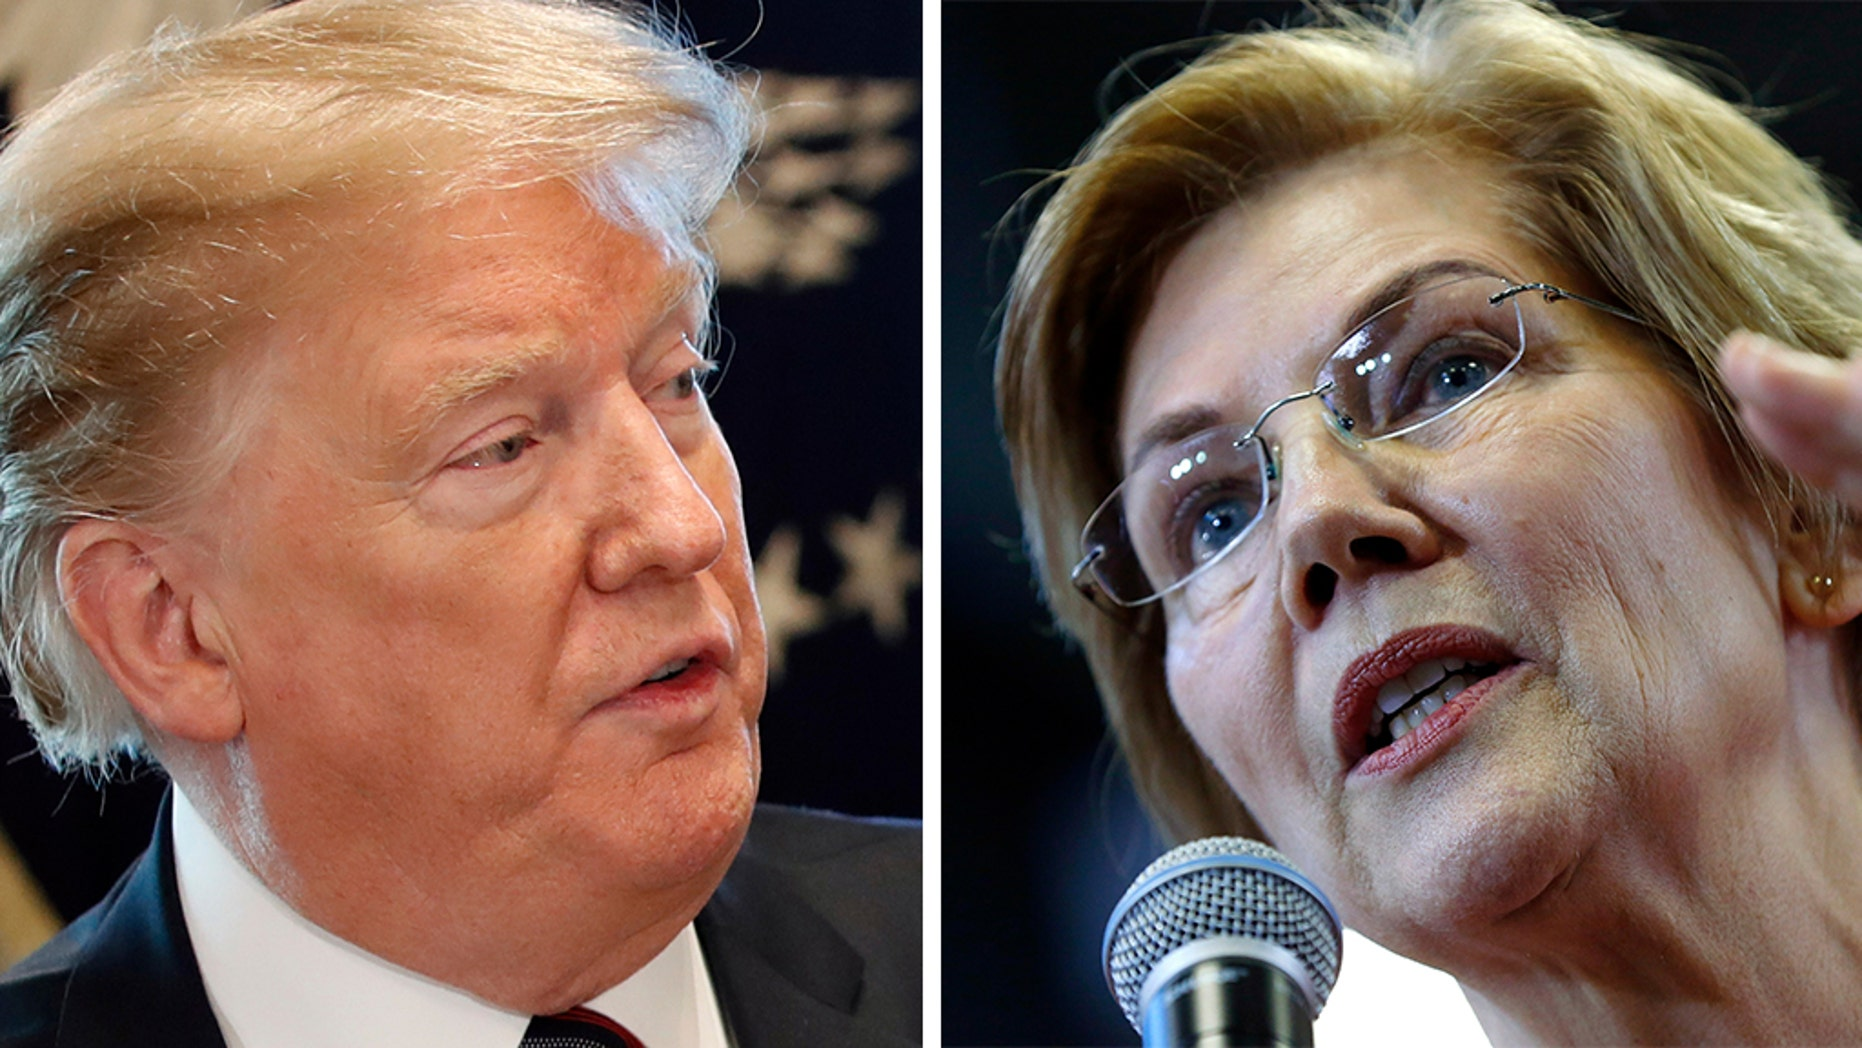 President Trump moaned Massachusetts Democratic Sen. Elizabeth Warren, who blew open a beer on the camera and asked some questions from her followers on New Year's Eve in a spontaneous life stream published on Instagram, channeling similar social media efforts by the young and hip. (AP)